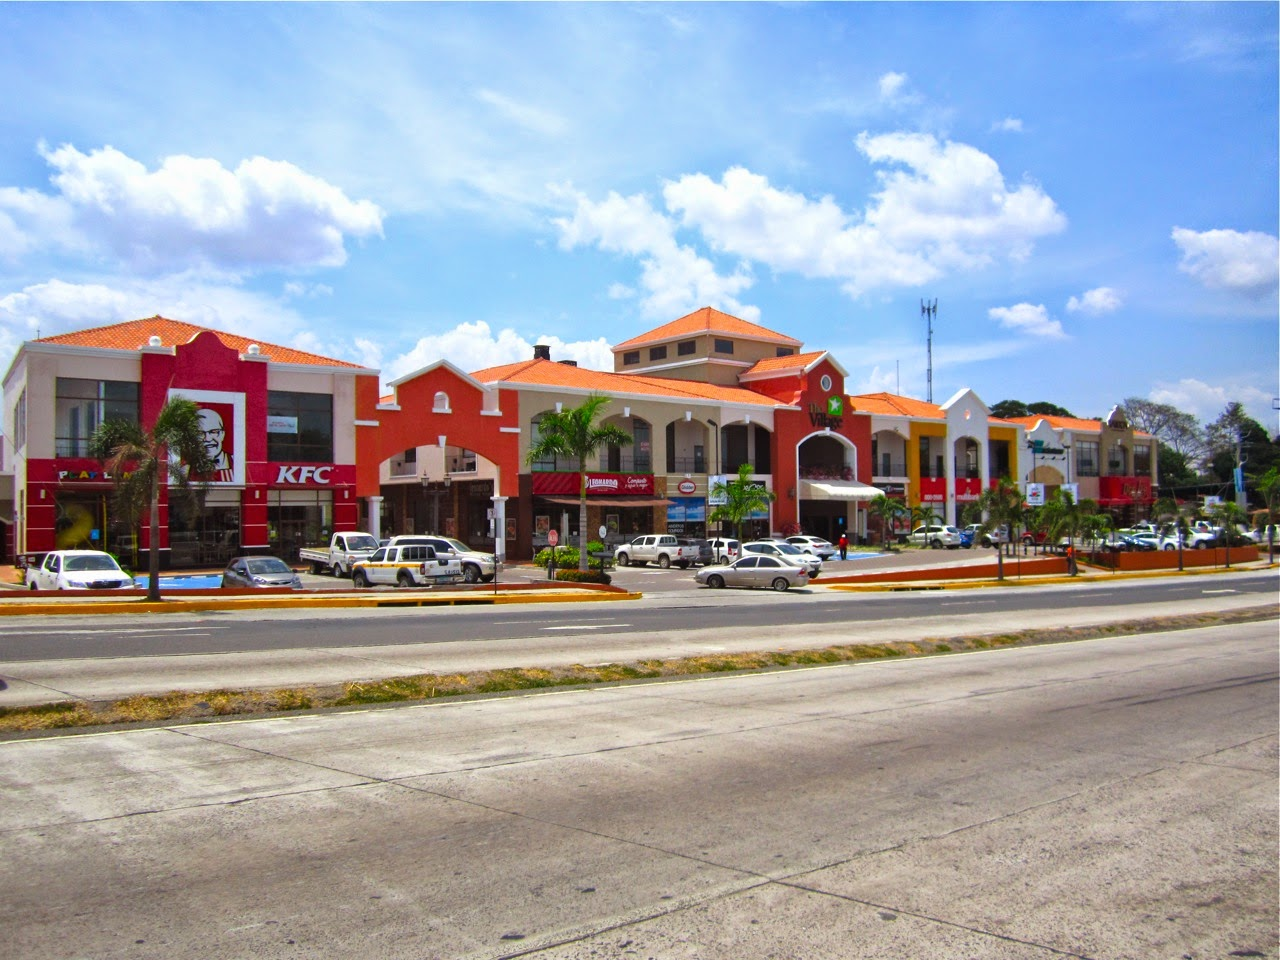 This Colorful Strip Mall Is On The Right Hand Side If Driving In From Panama City